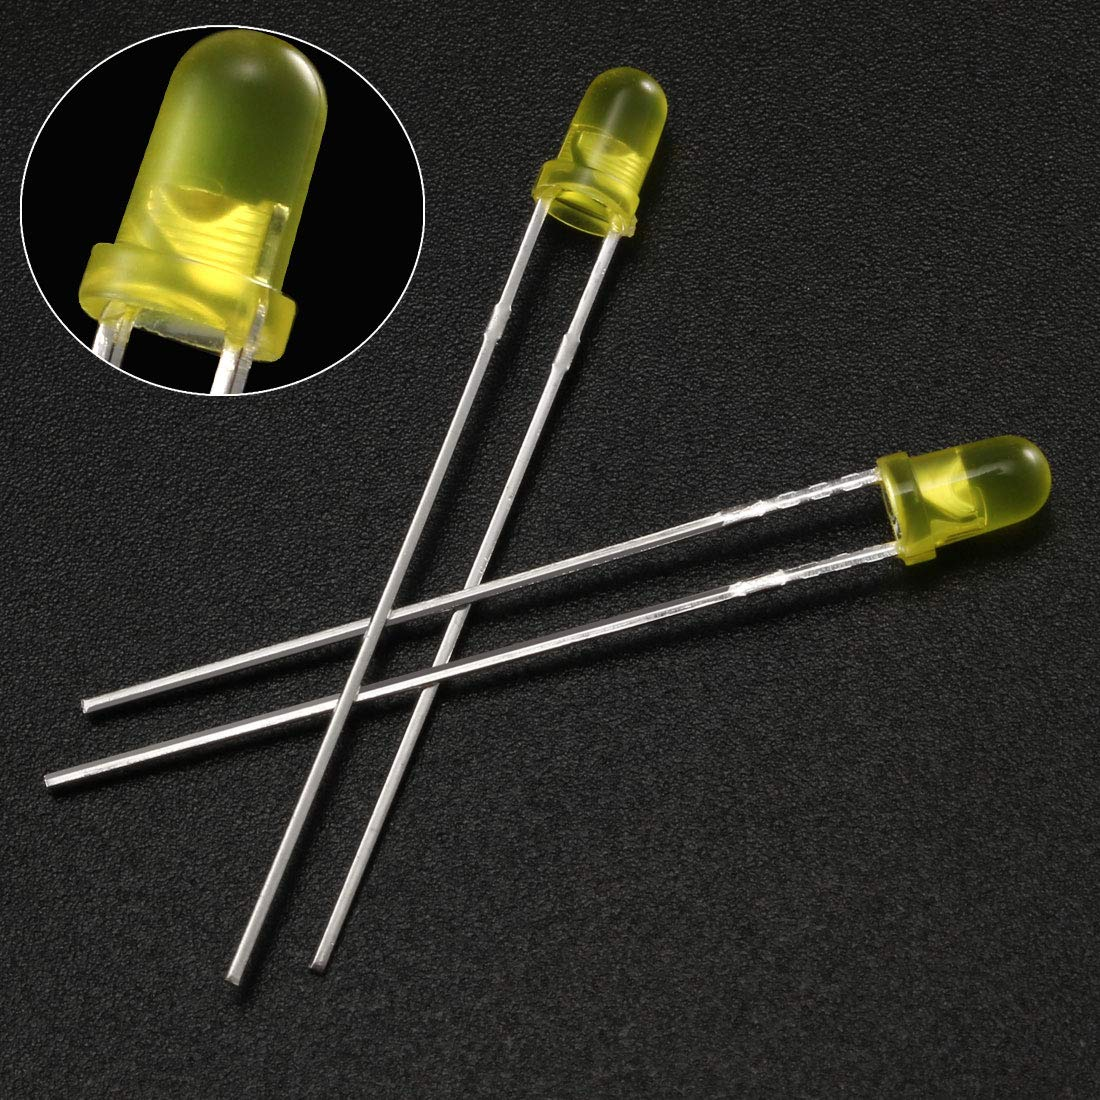 uxcell 150pcs 5mm Red Blue Green 4 Pin LED Diode Lights Clear Round Transparent 20mA Lighting Bulb Lamps Electronic Component Light Emitting Diodes